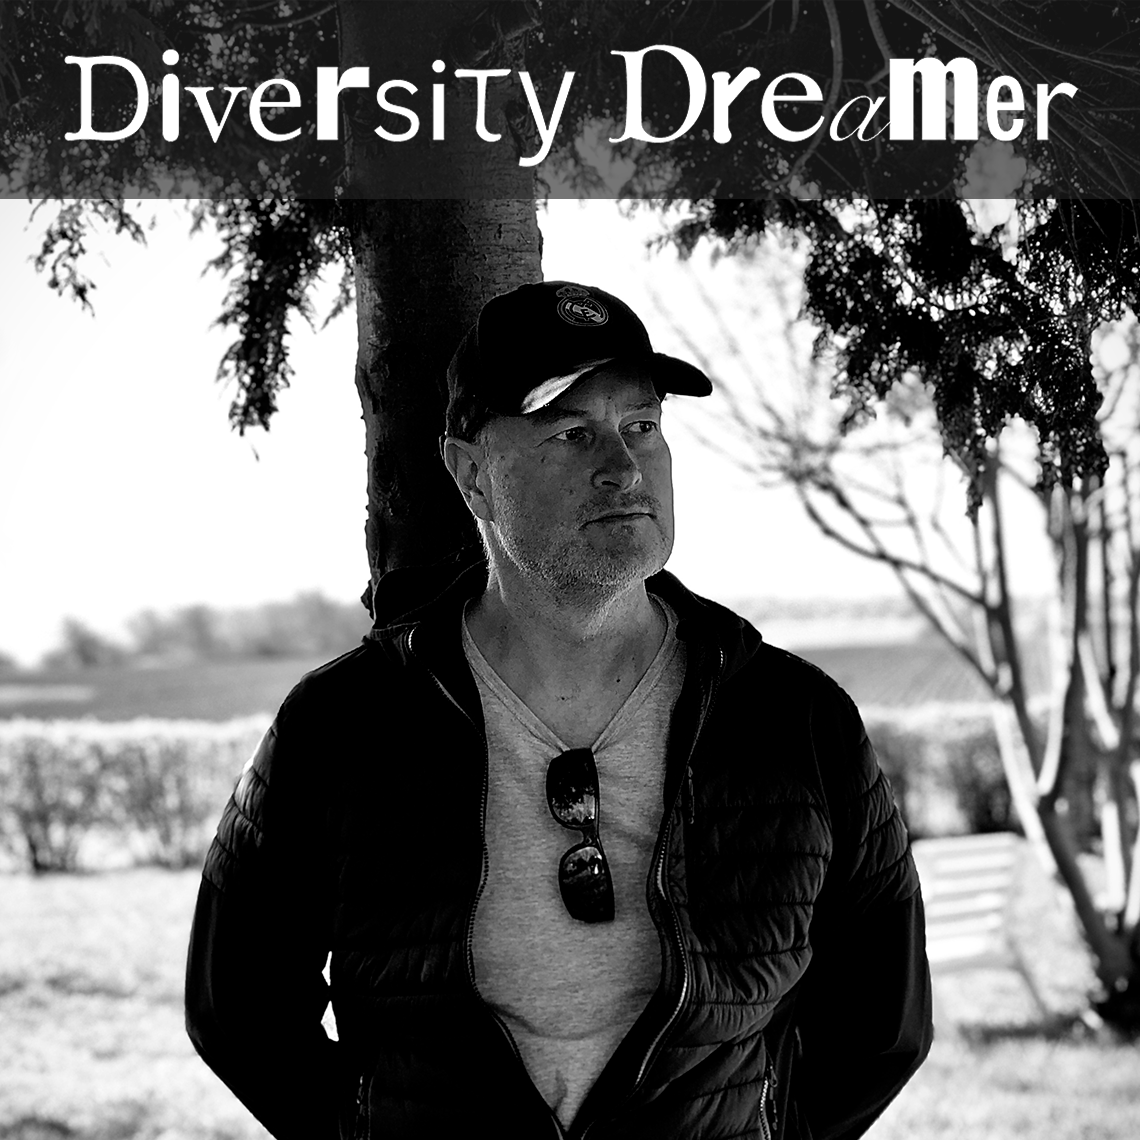 Stream all music by Diversity Dreamer Image